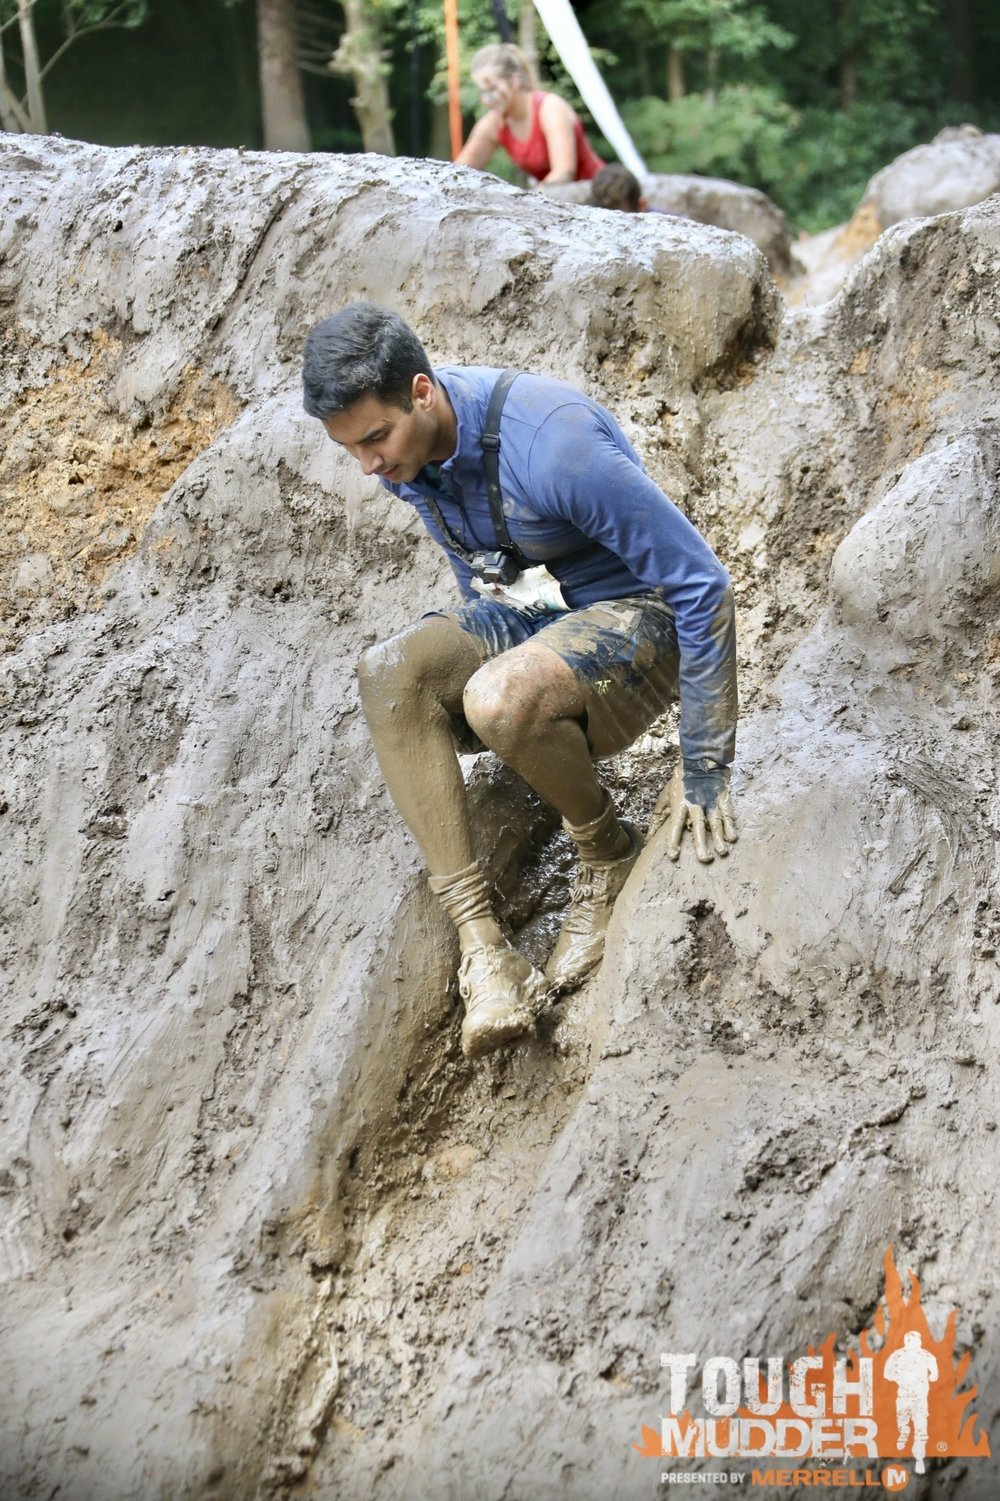 Tough Mudder, London, UK